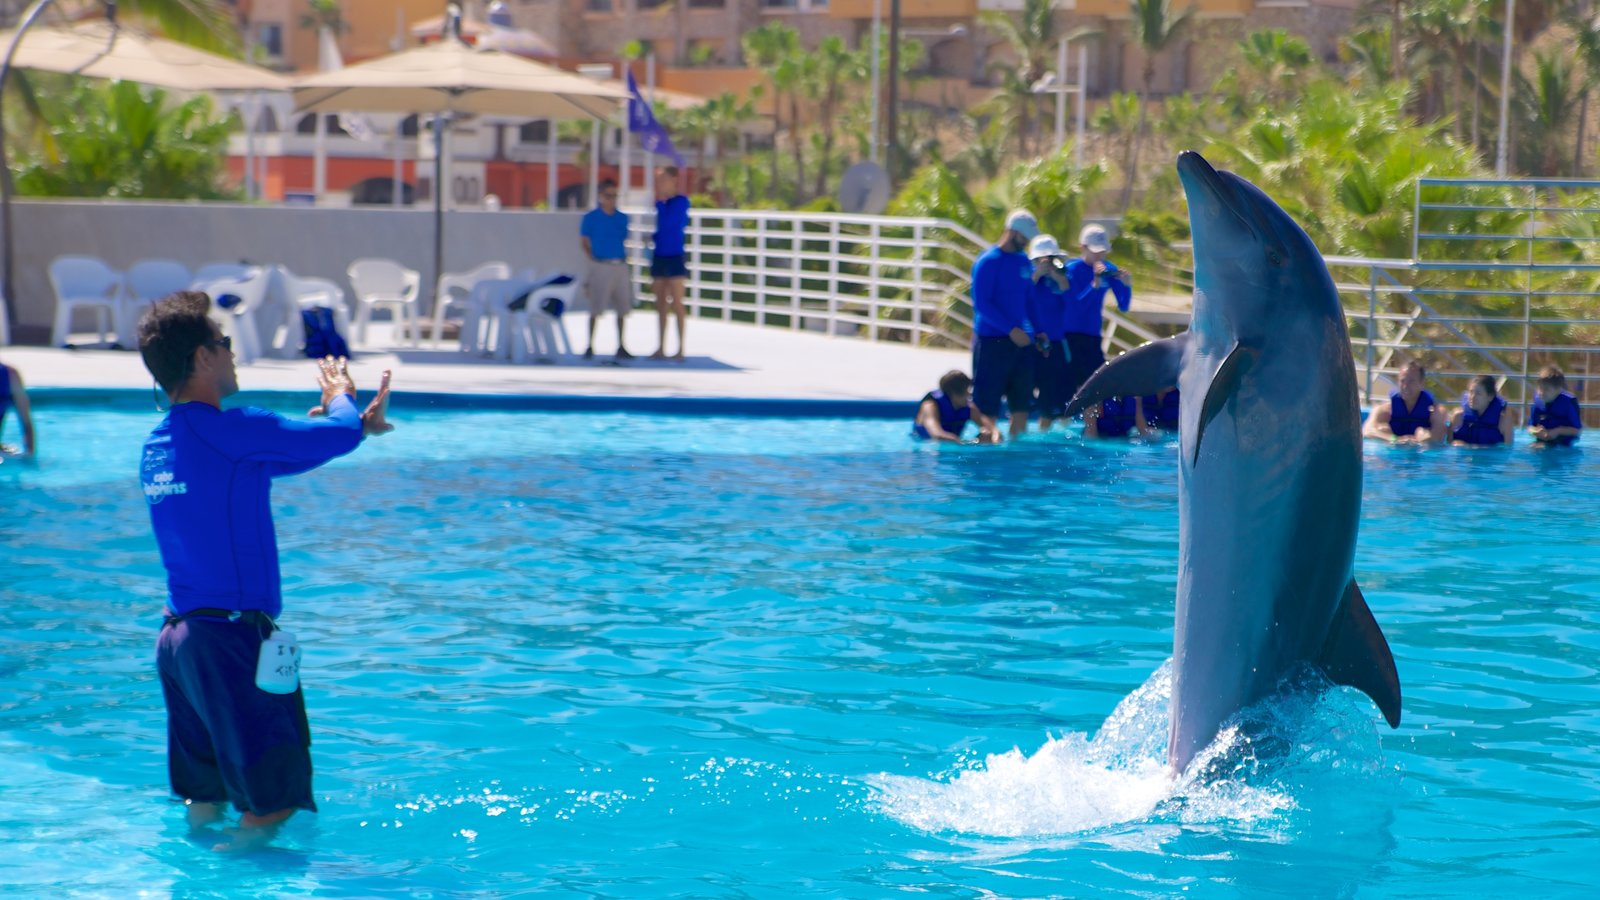 Cabo Dolphins showing marine life, performance art and a water park